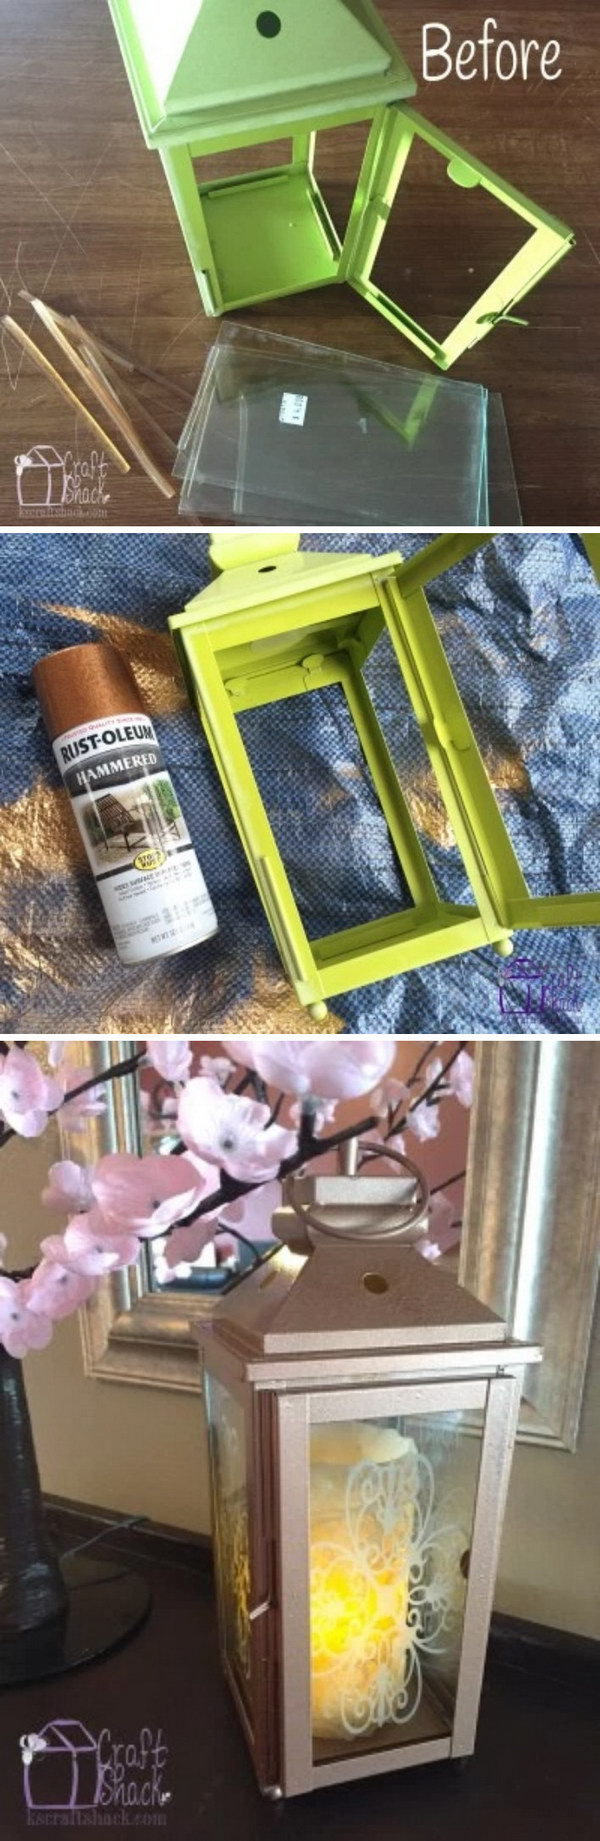 Spray Painting Ideas Part - 45: Thrift Store Lantern Makeover With Gold Spray